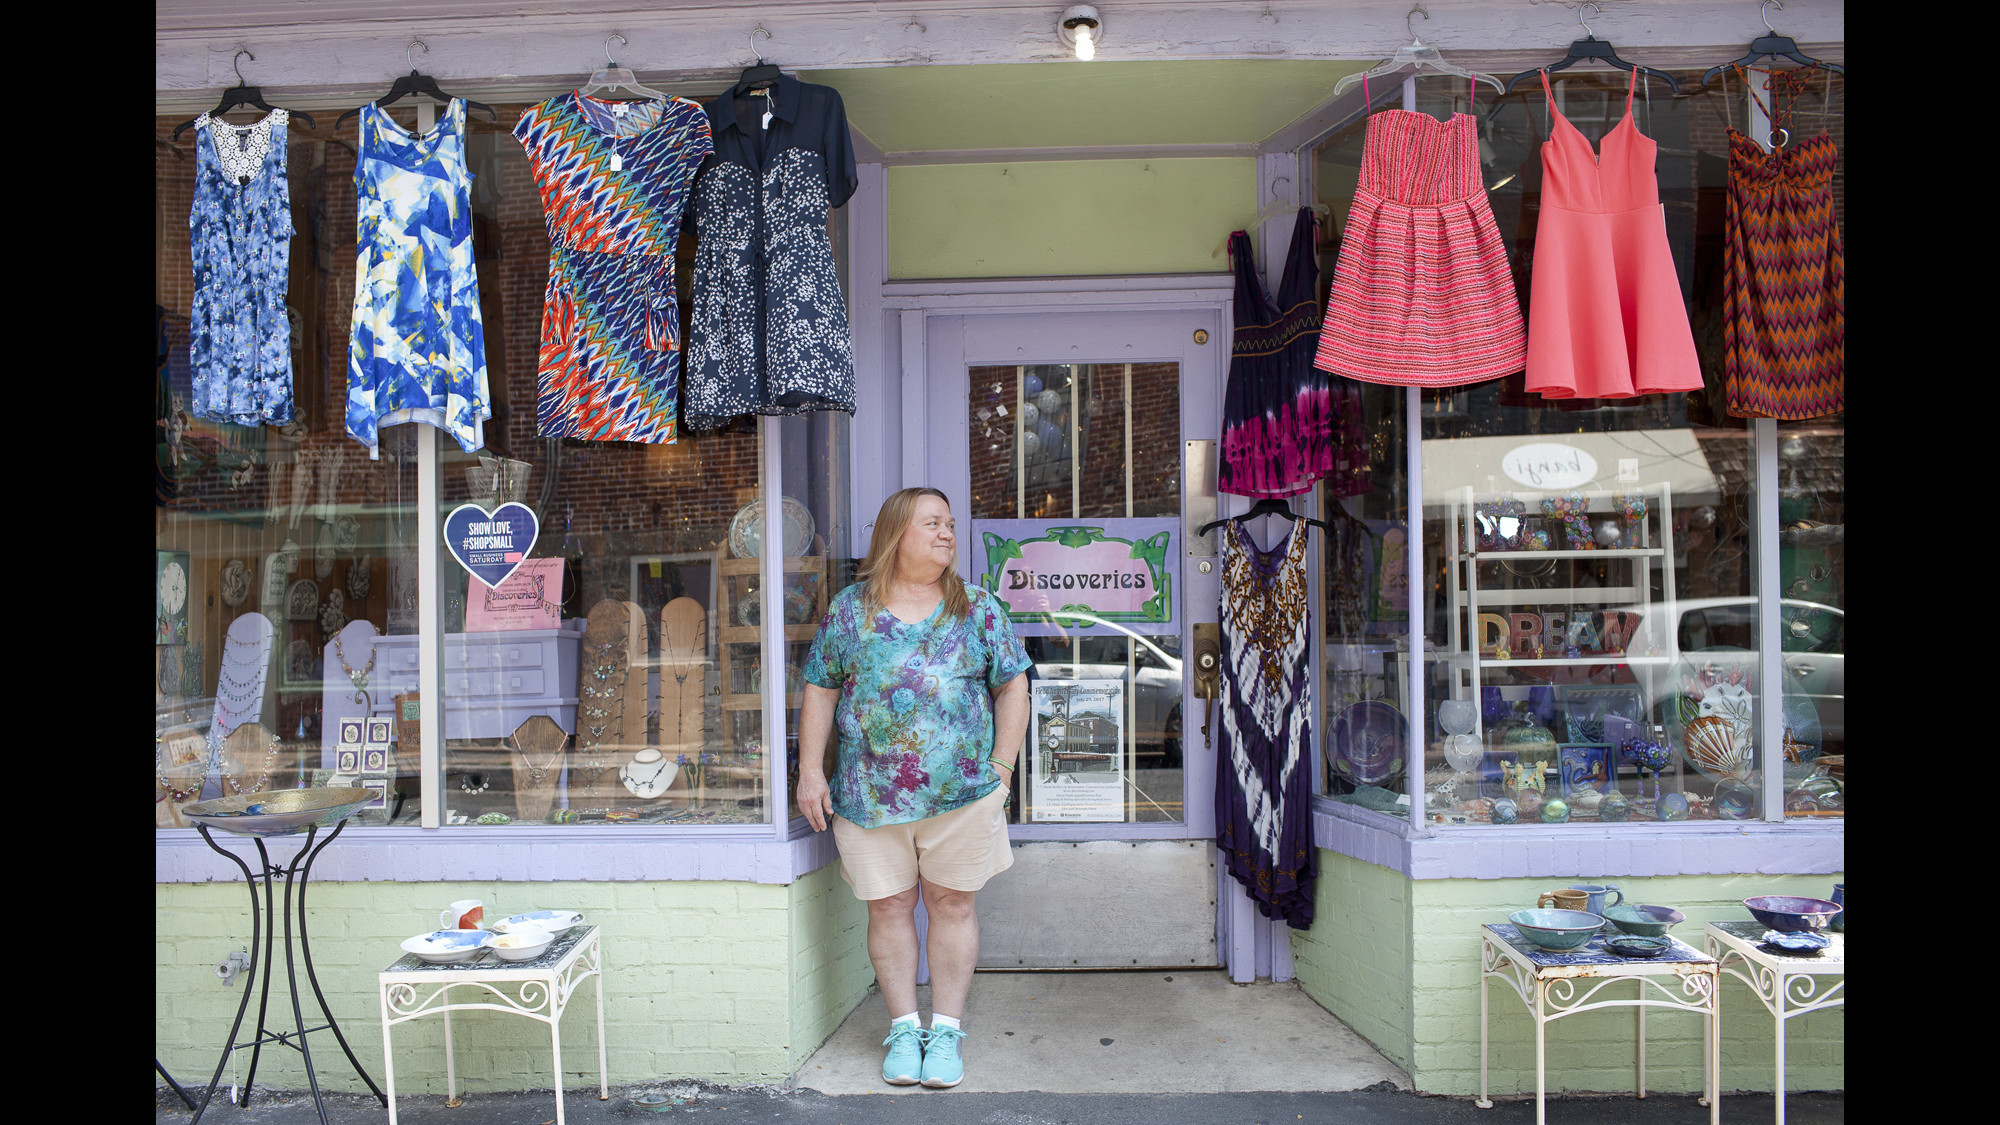 Main Street businesses rise from the rubble one year after devastating Ellicott City flood